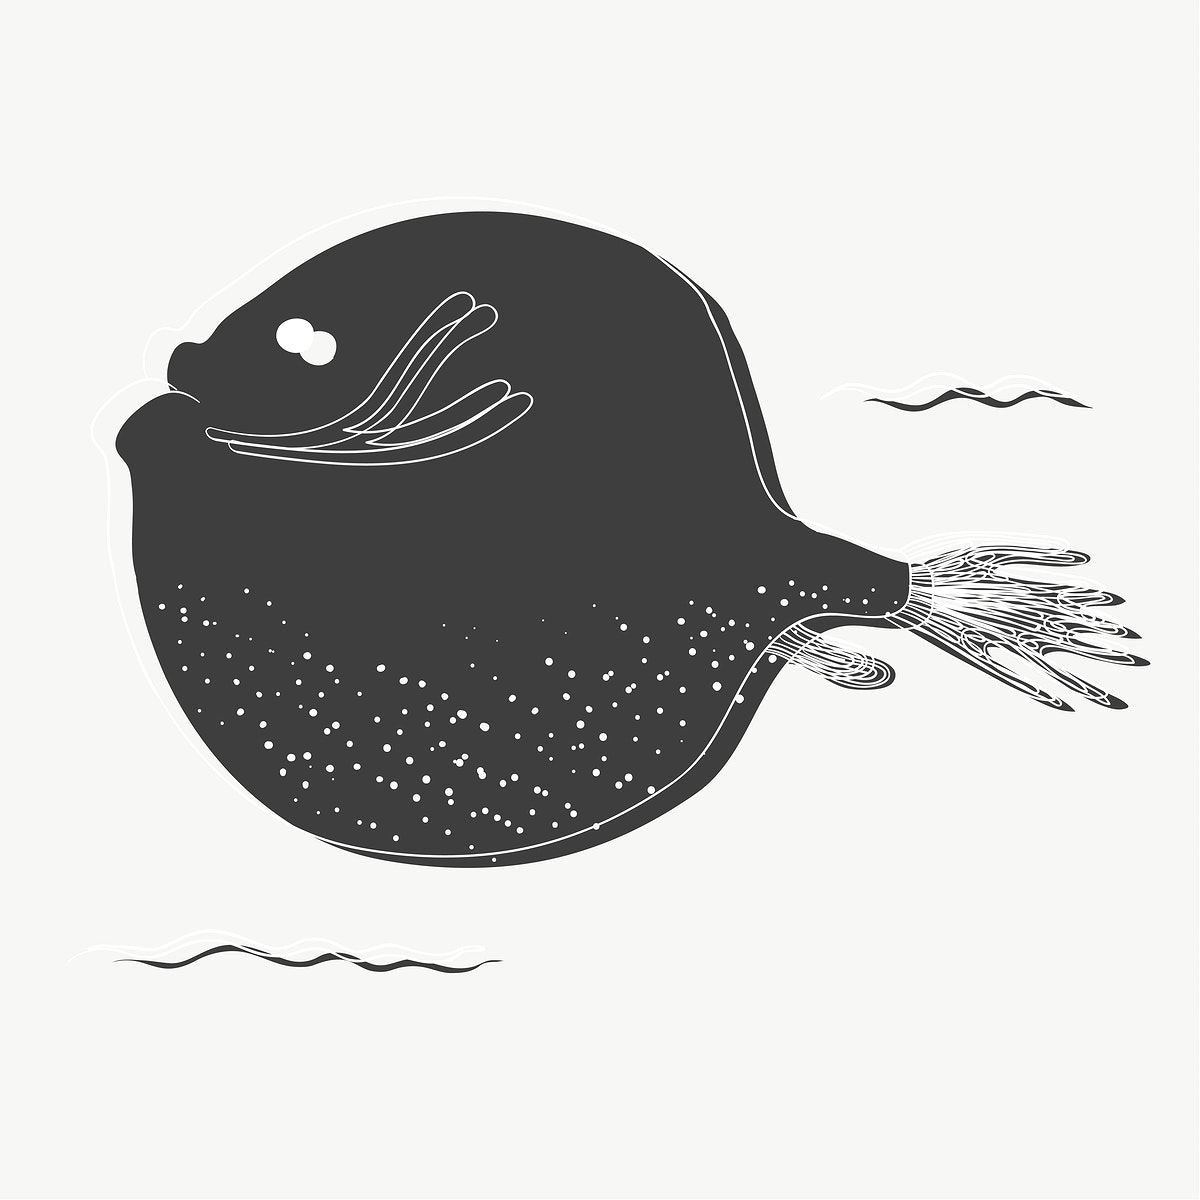 Round fish drawing vector